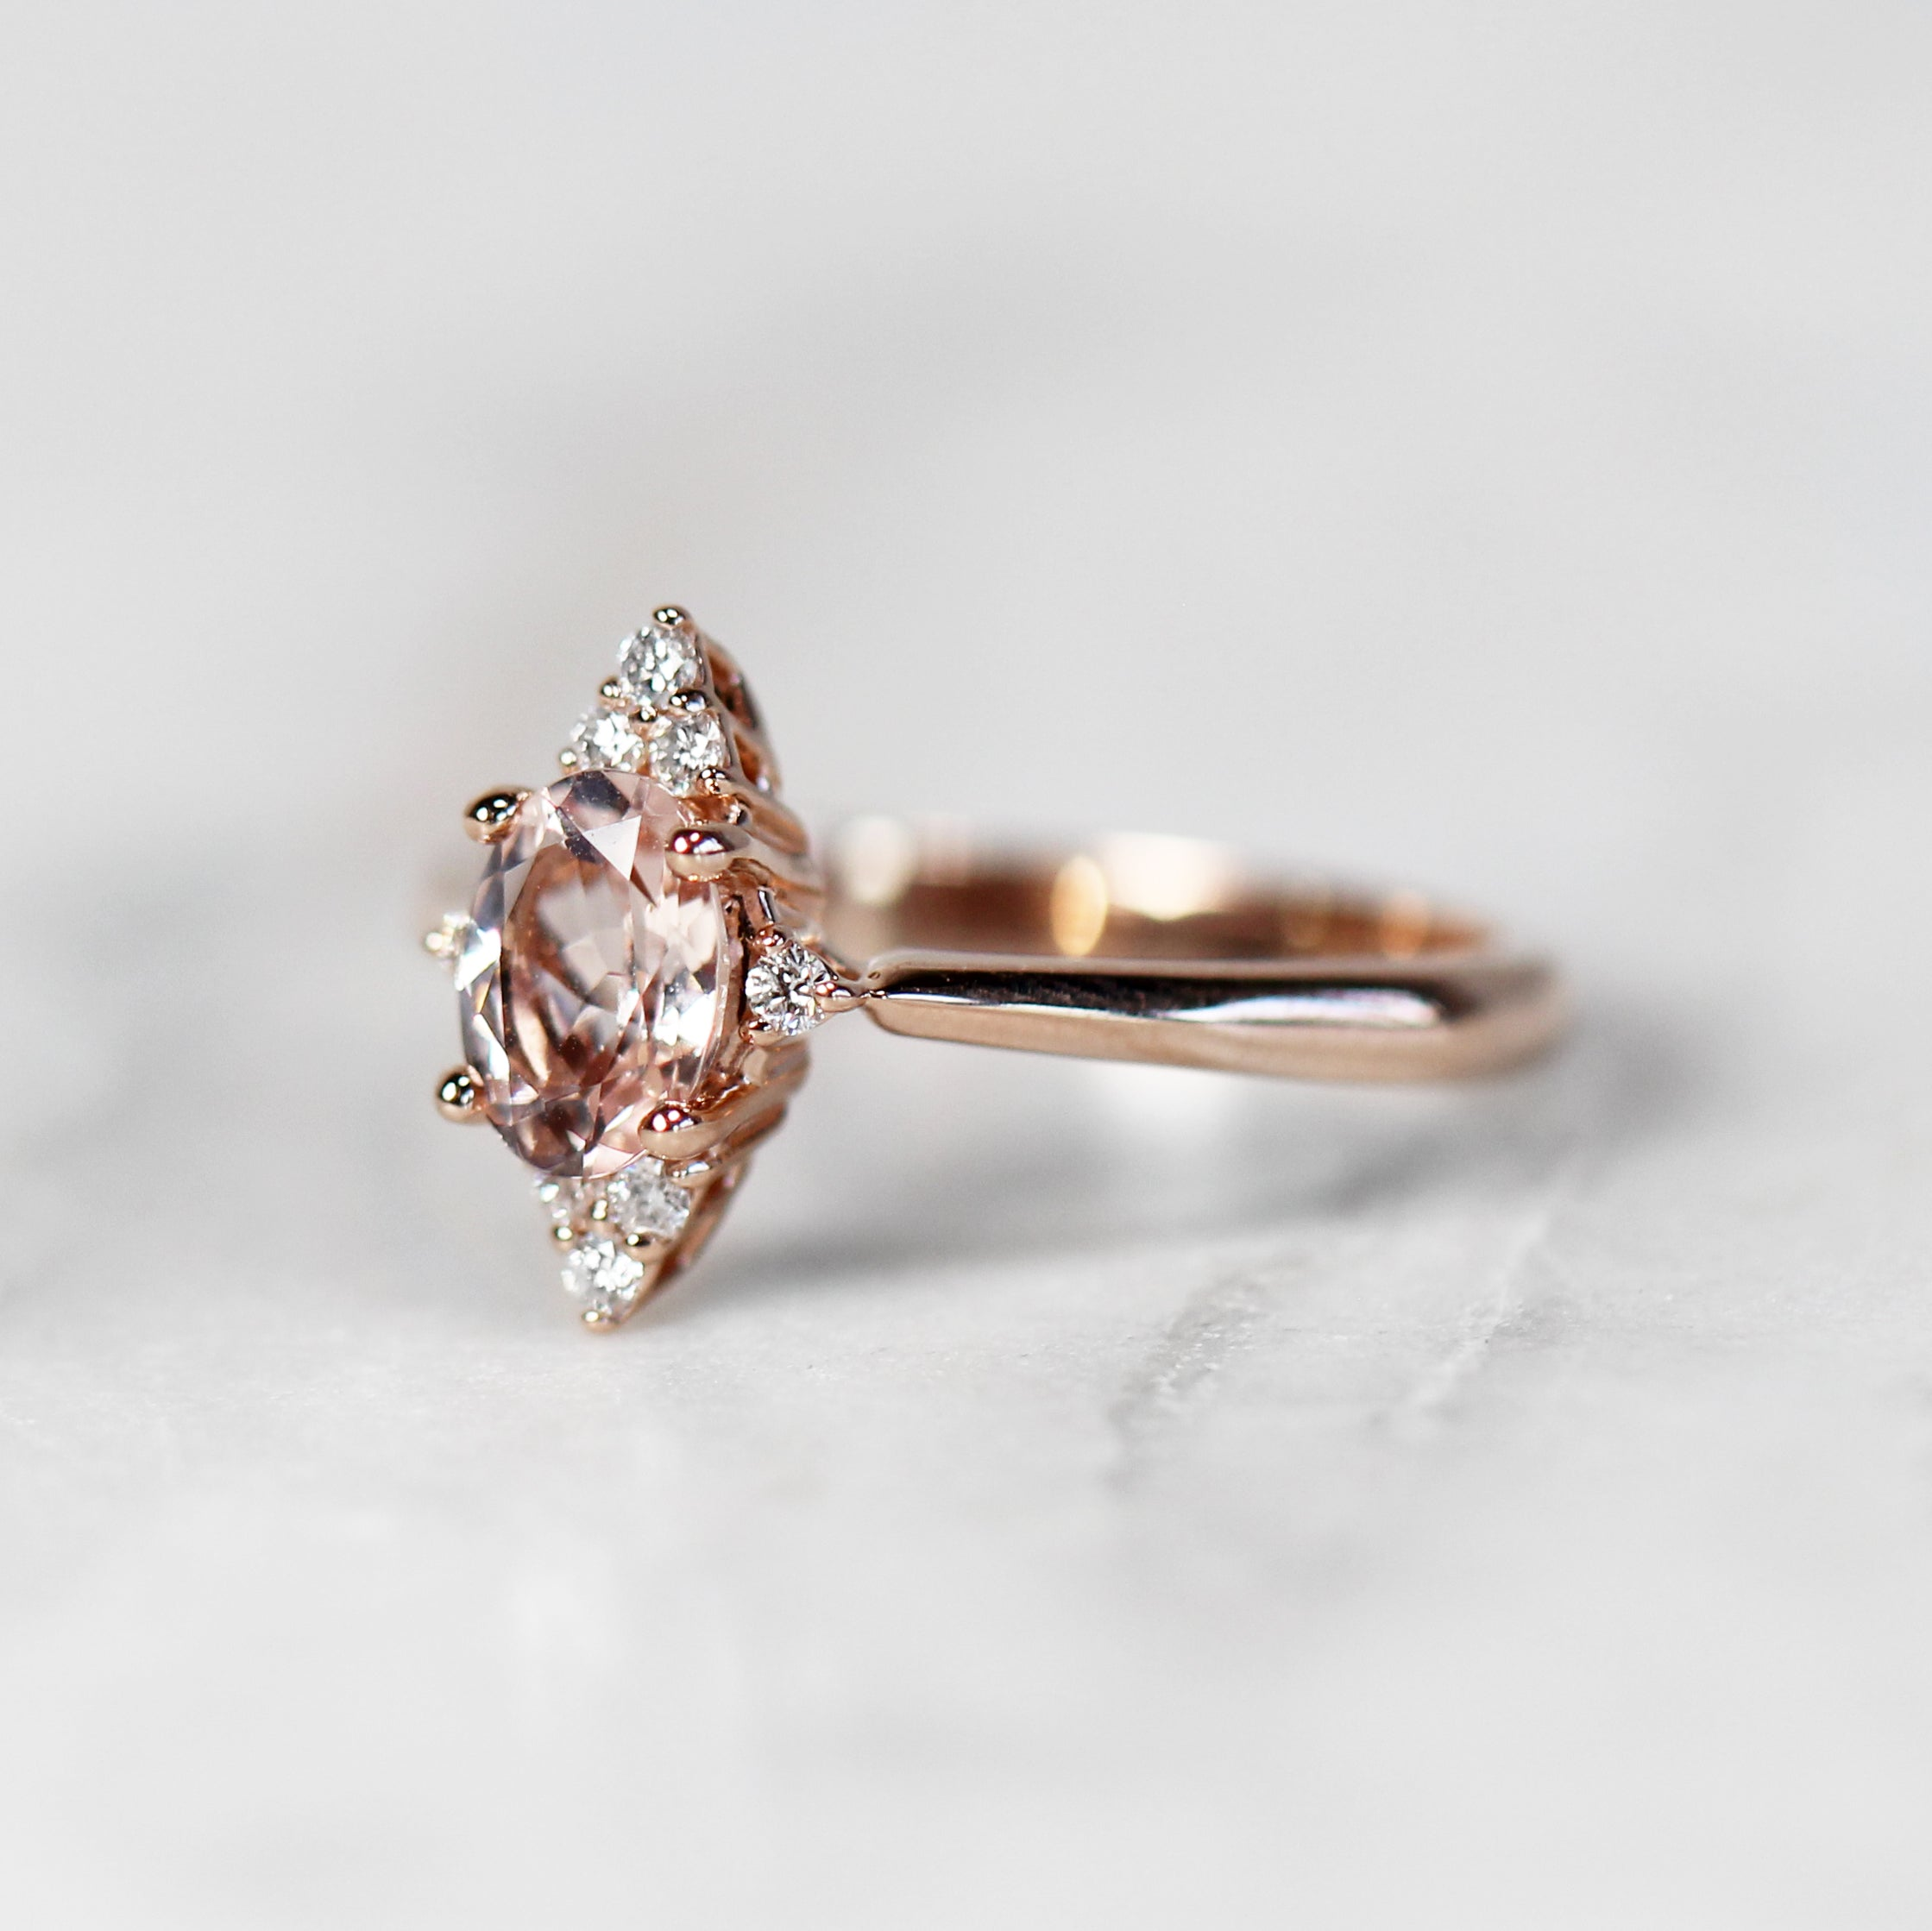 Emery Ring with 1.00 Carat Oval Morganite in 10k Rose Gold - Ready to Size and Ship - Celestial Diamonds ® by Midwinter Co.